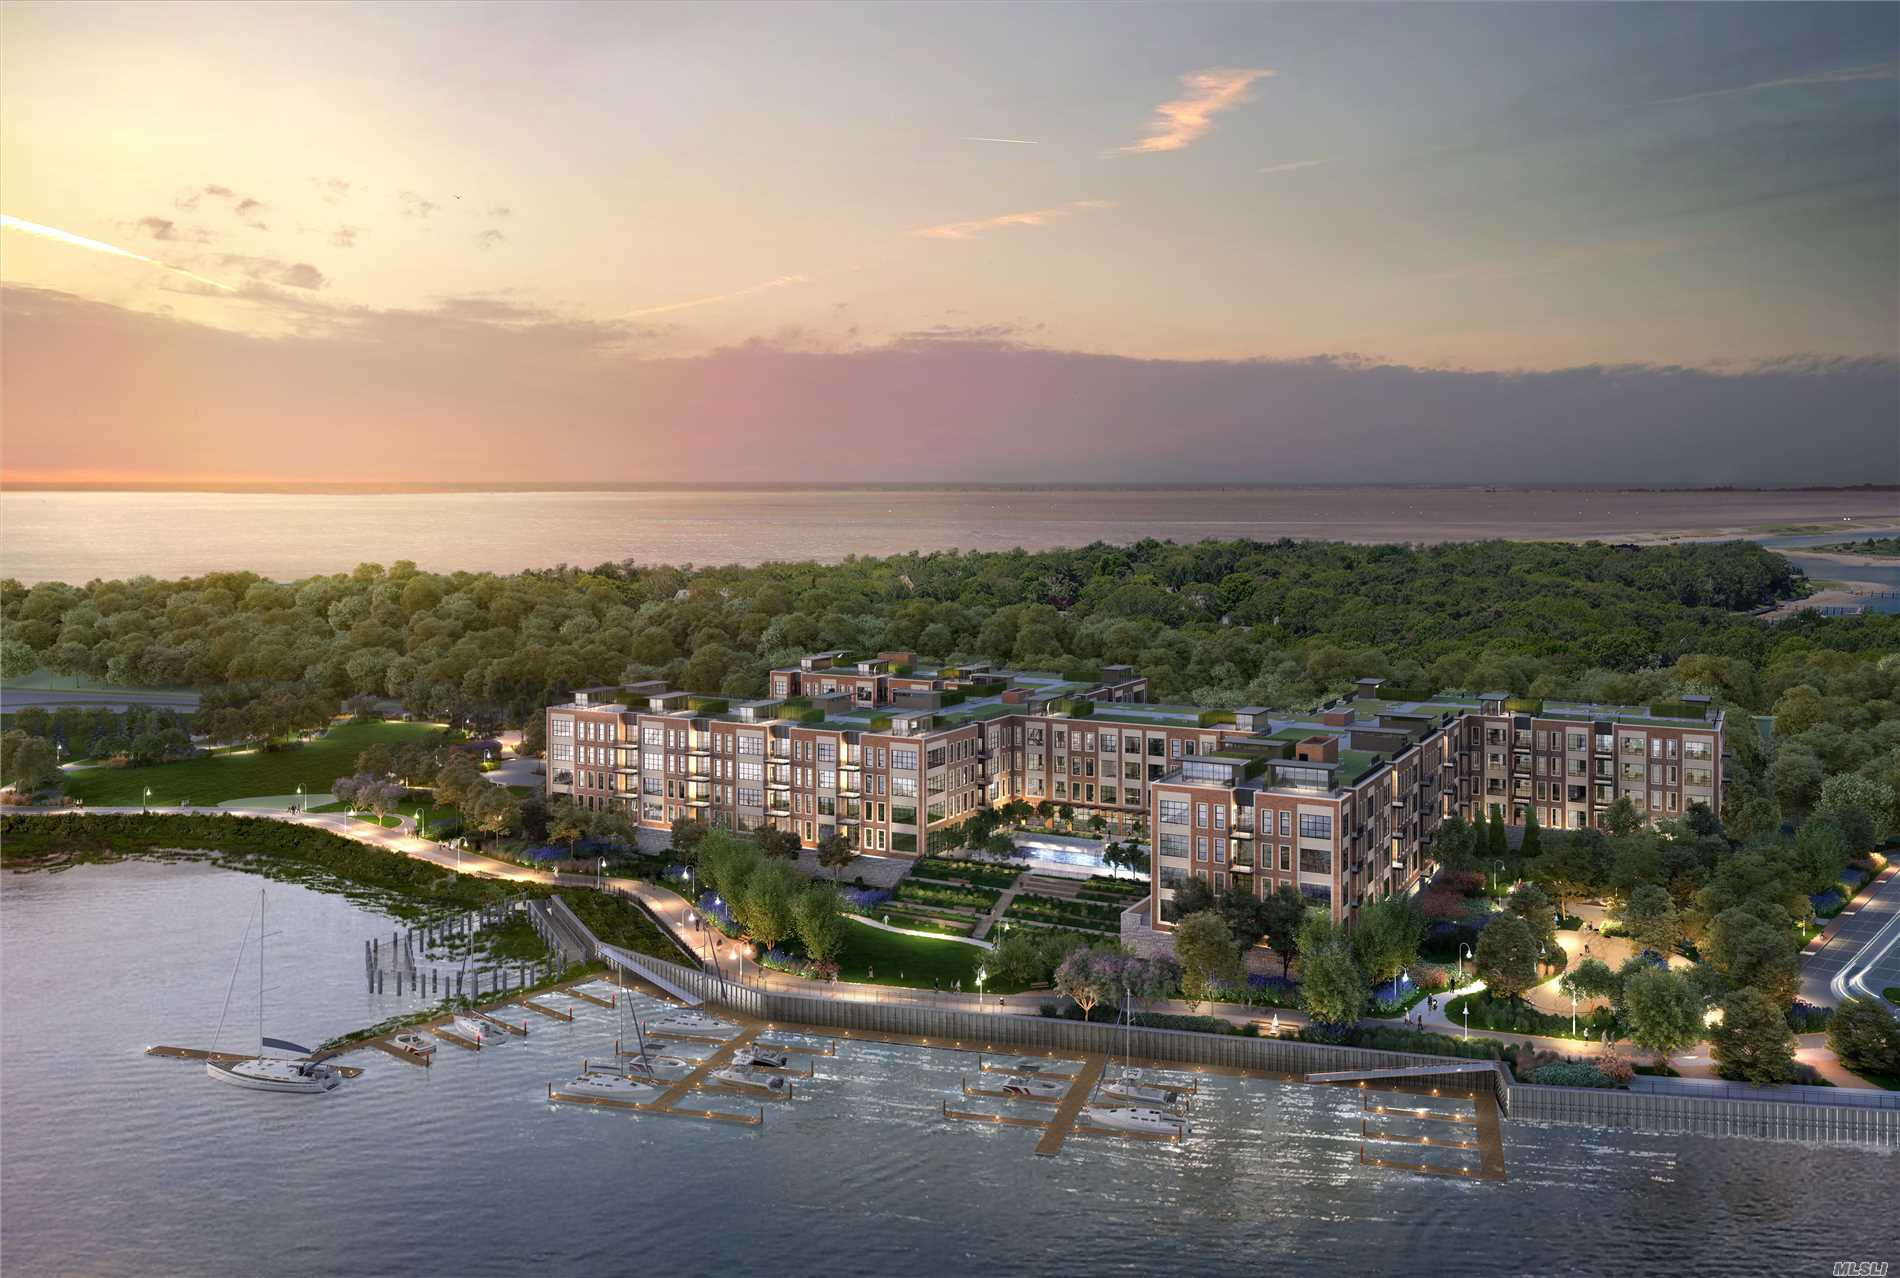 Property for sale at 100 Garvies Point Road # 1333, Glen Cove NY 11542, Glen Cove,  New York 11542